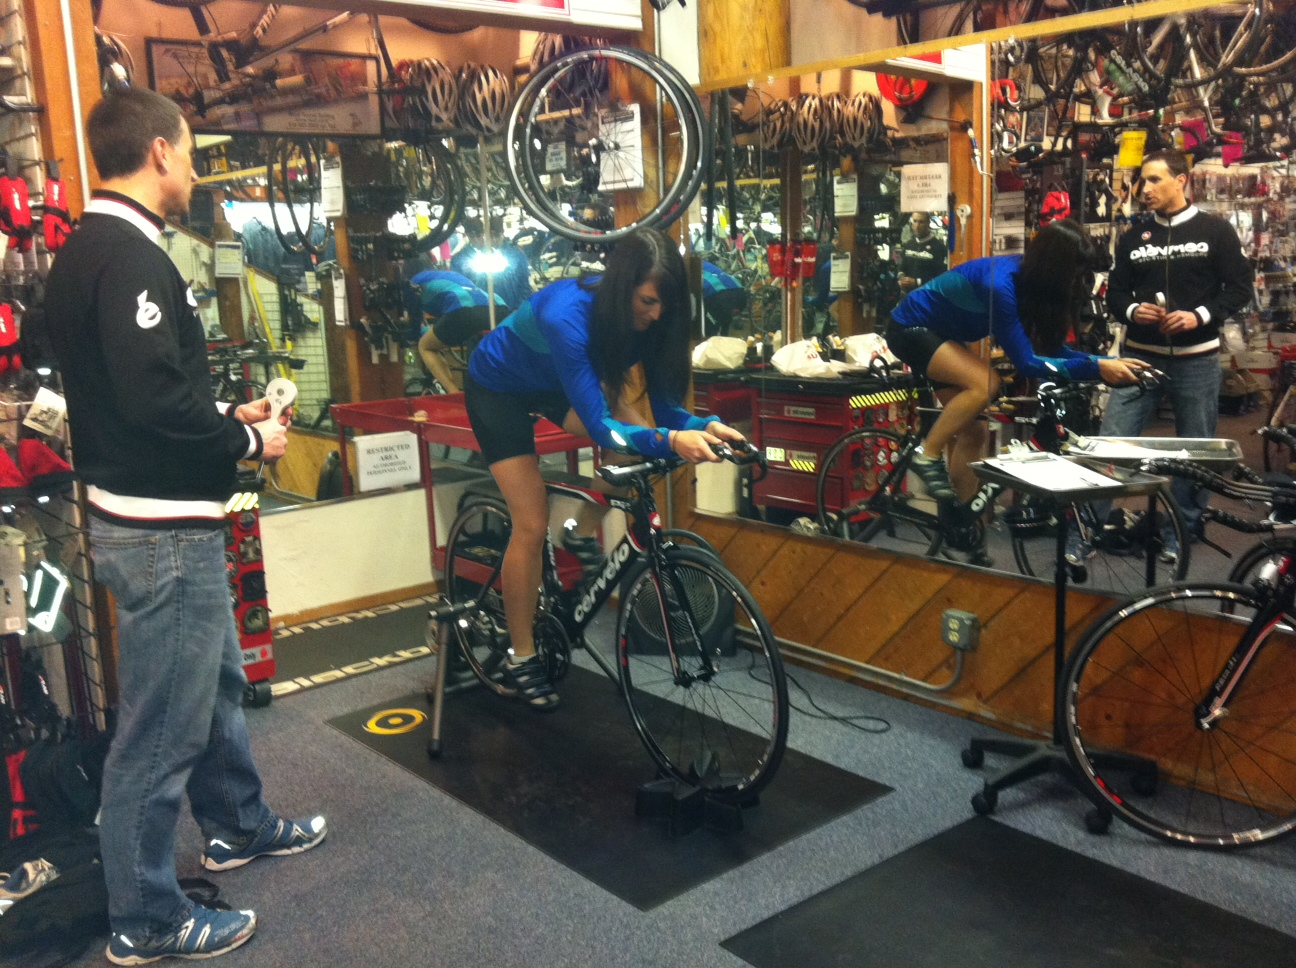 Getting Fitted on My New Bike!